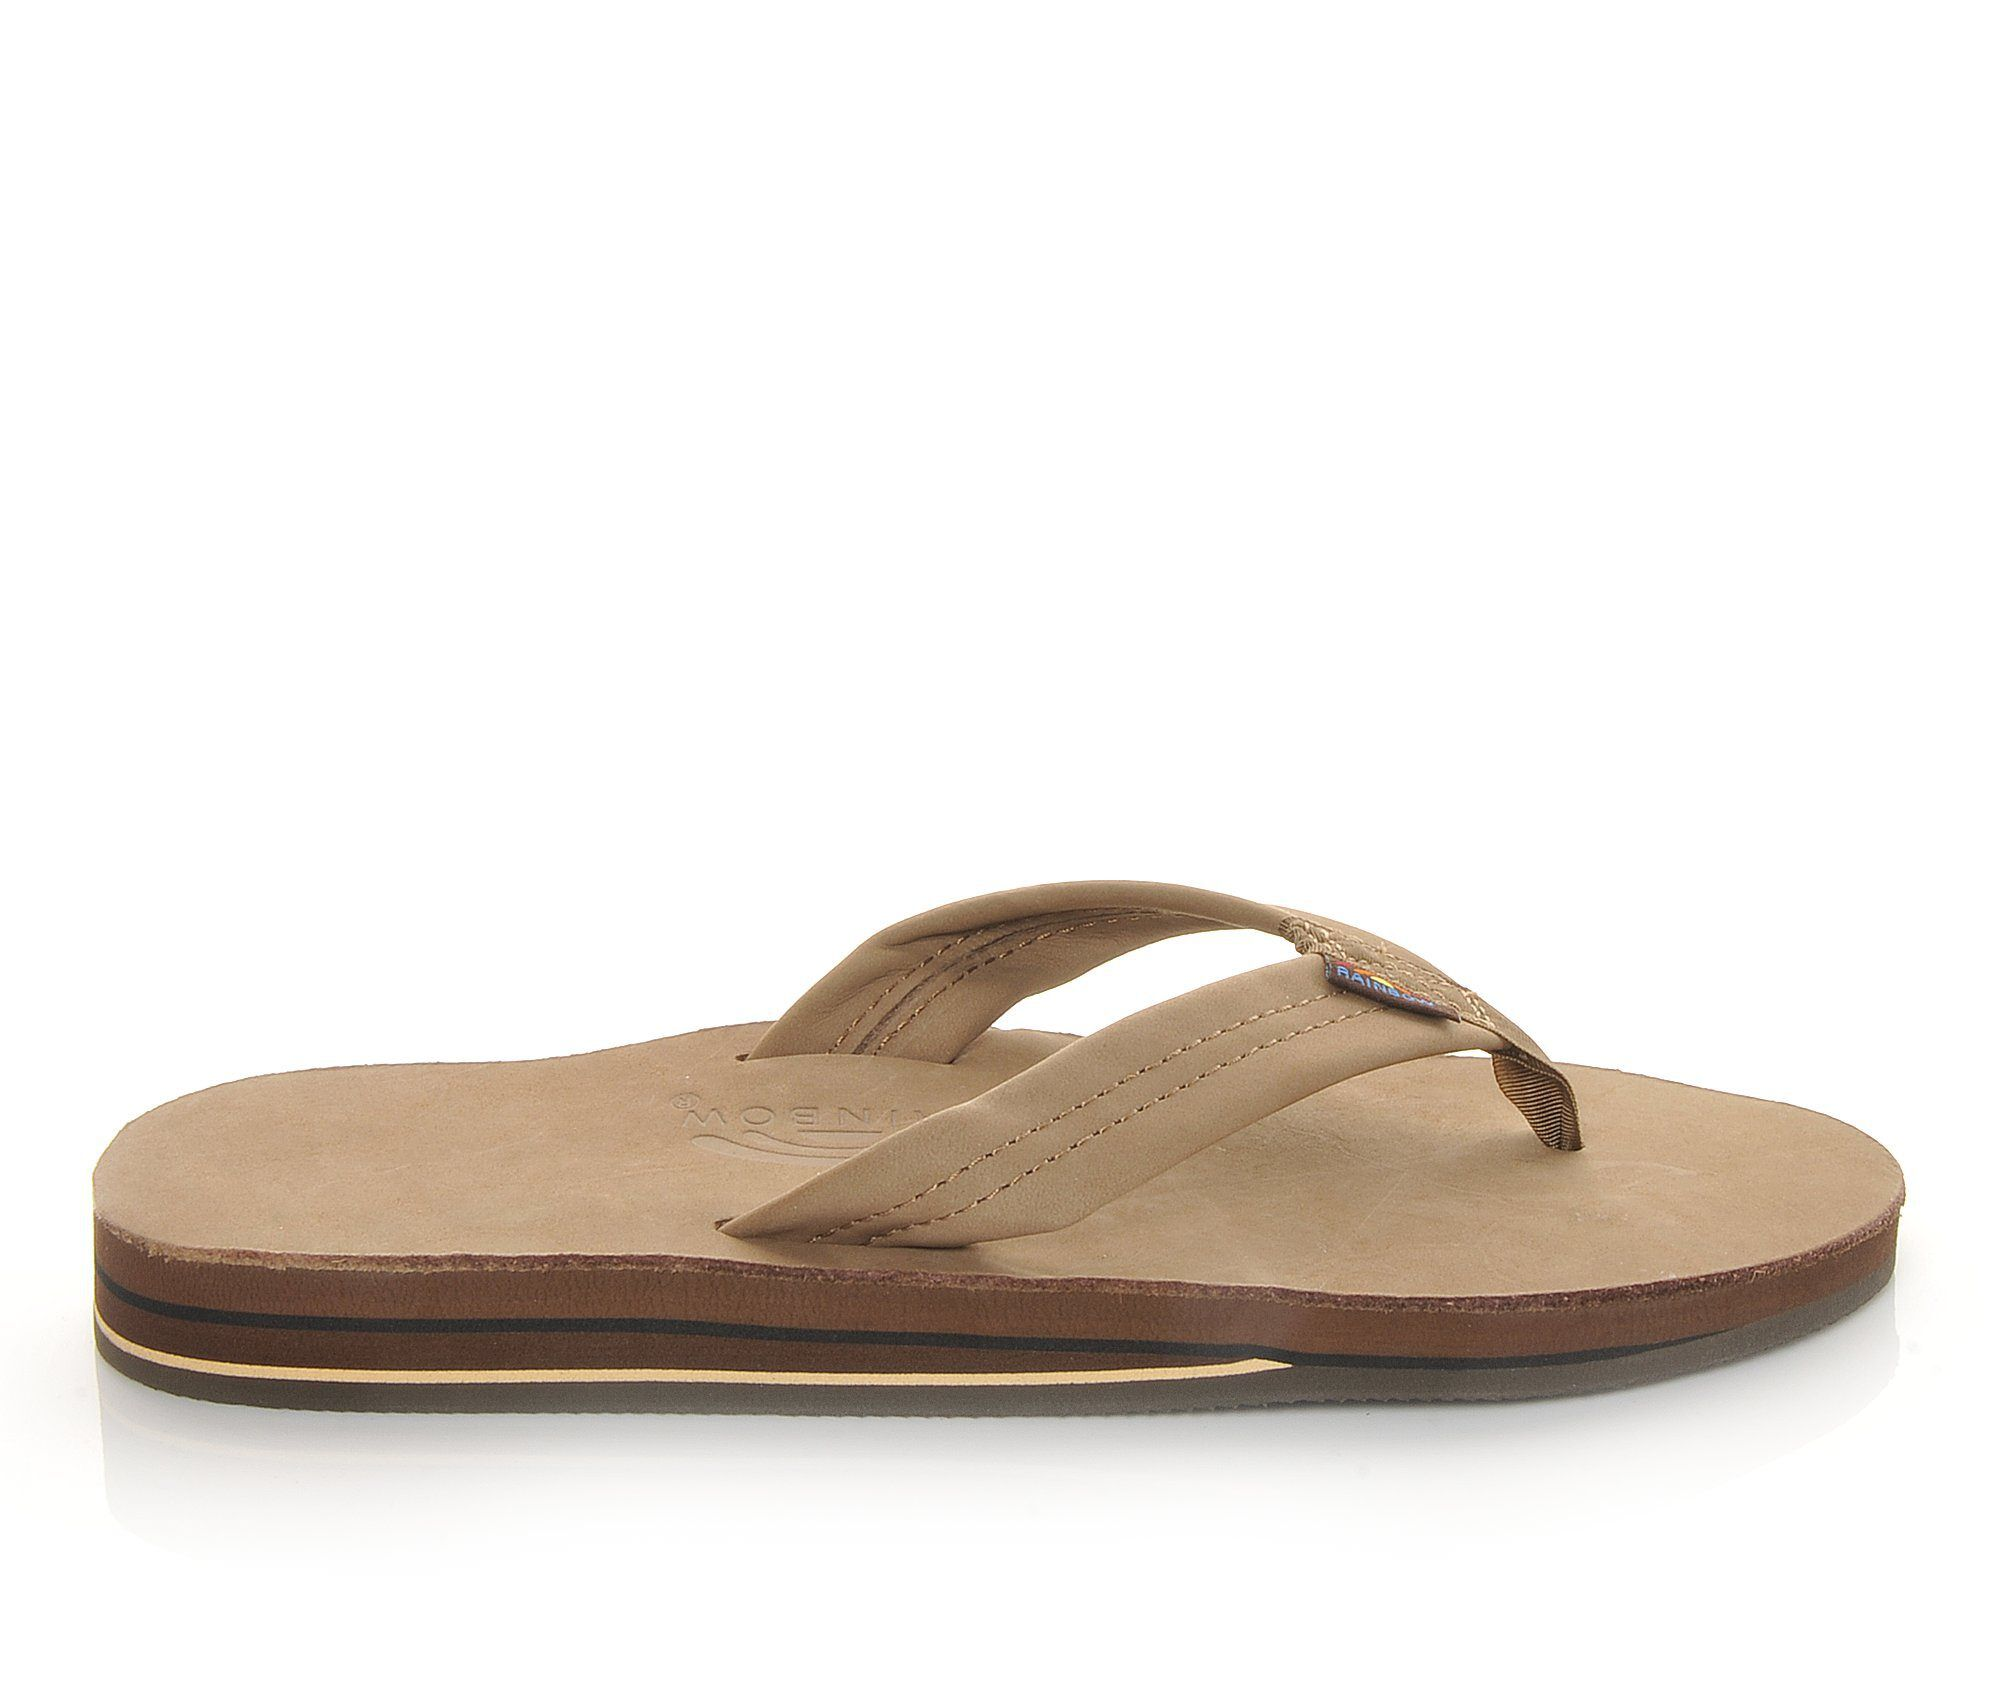 Men's Rainbow Sandals Premier Leather Flip-Flops Dark Brown